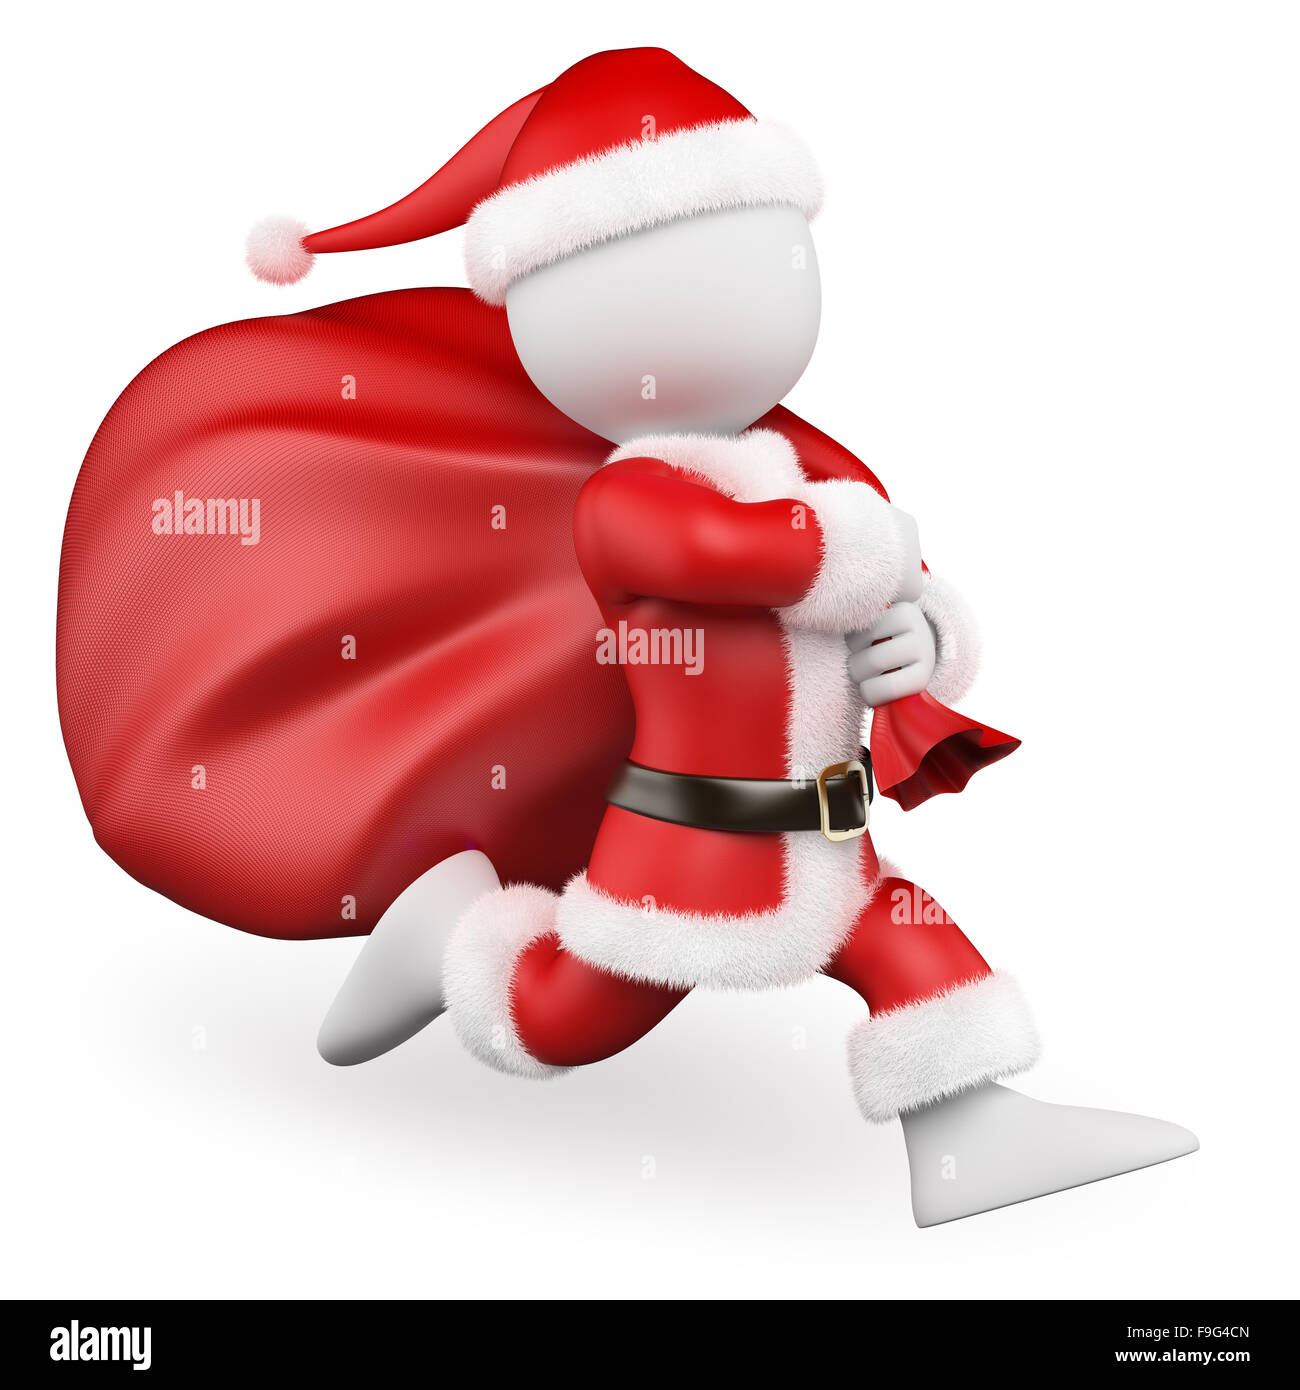 3d white people. Santa Claus running with big bag full of gifts. Isolated white background. - Stock Image